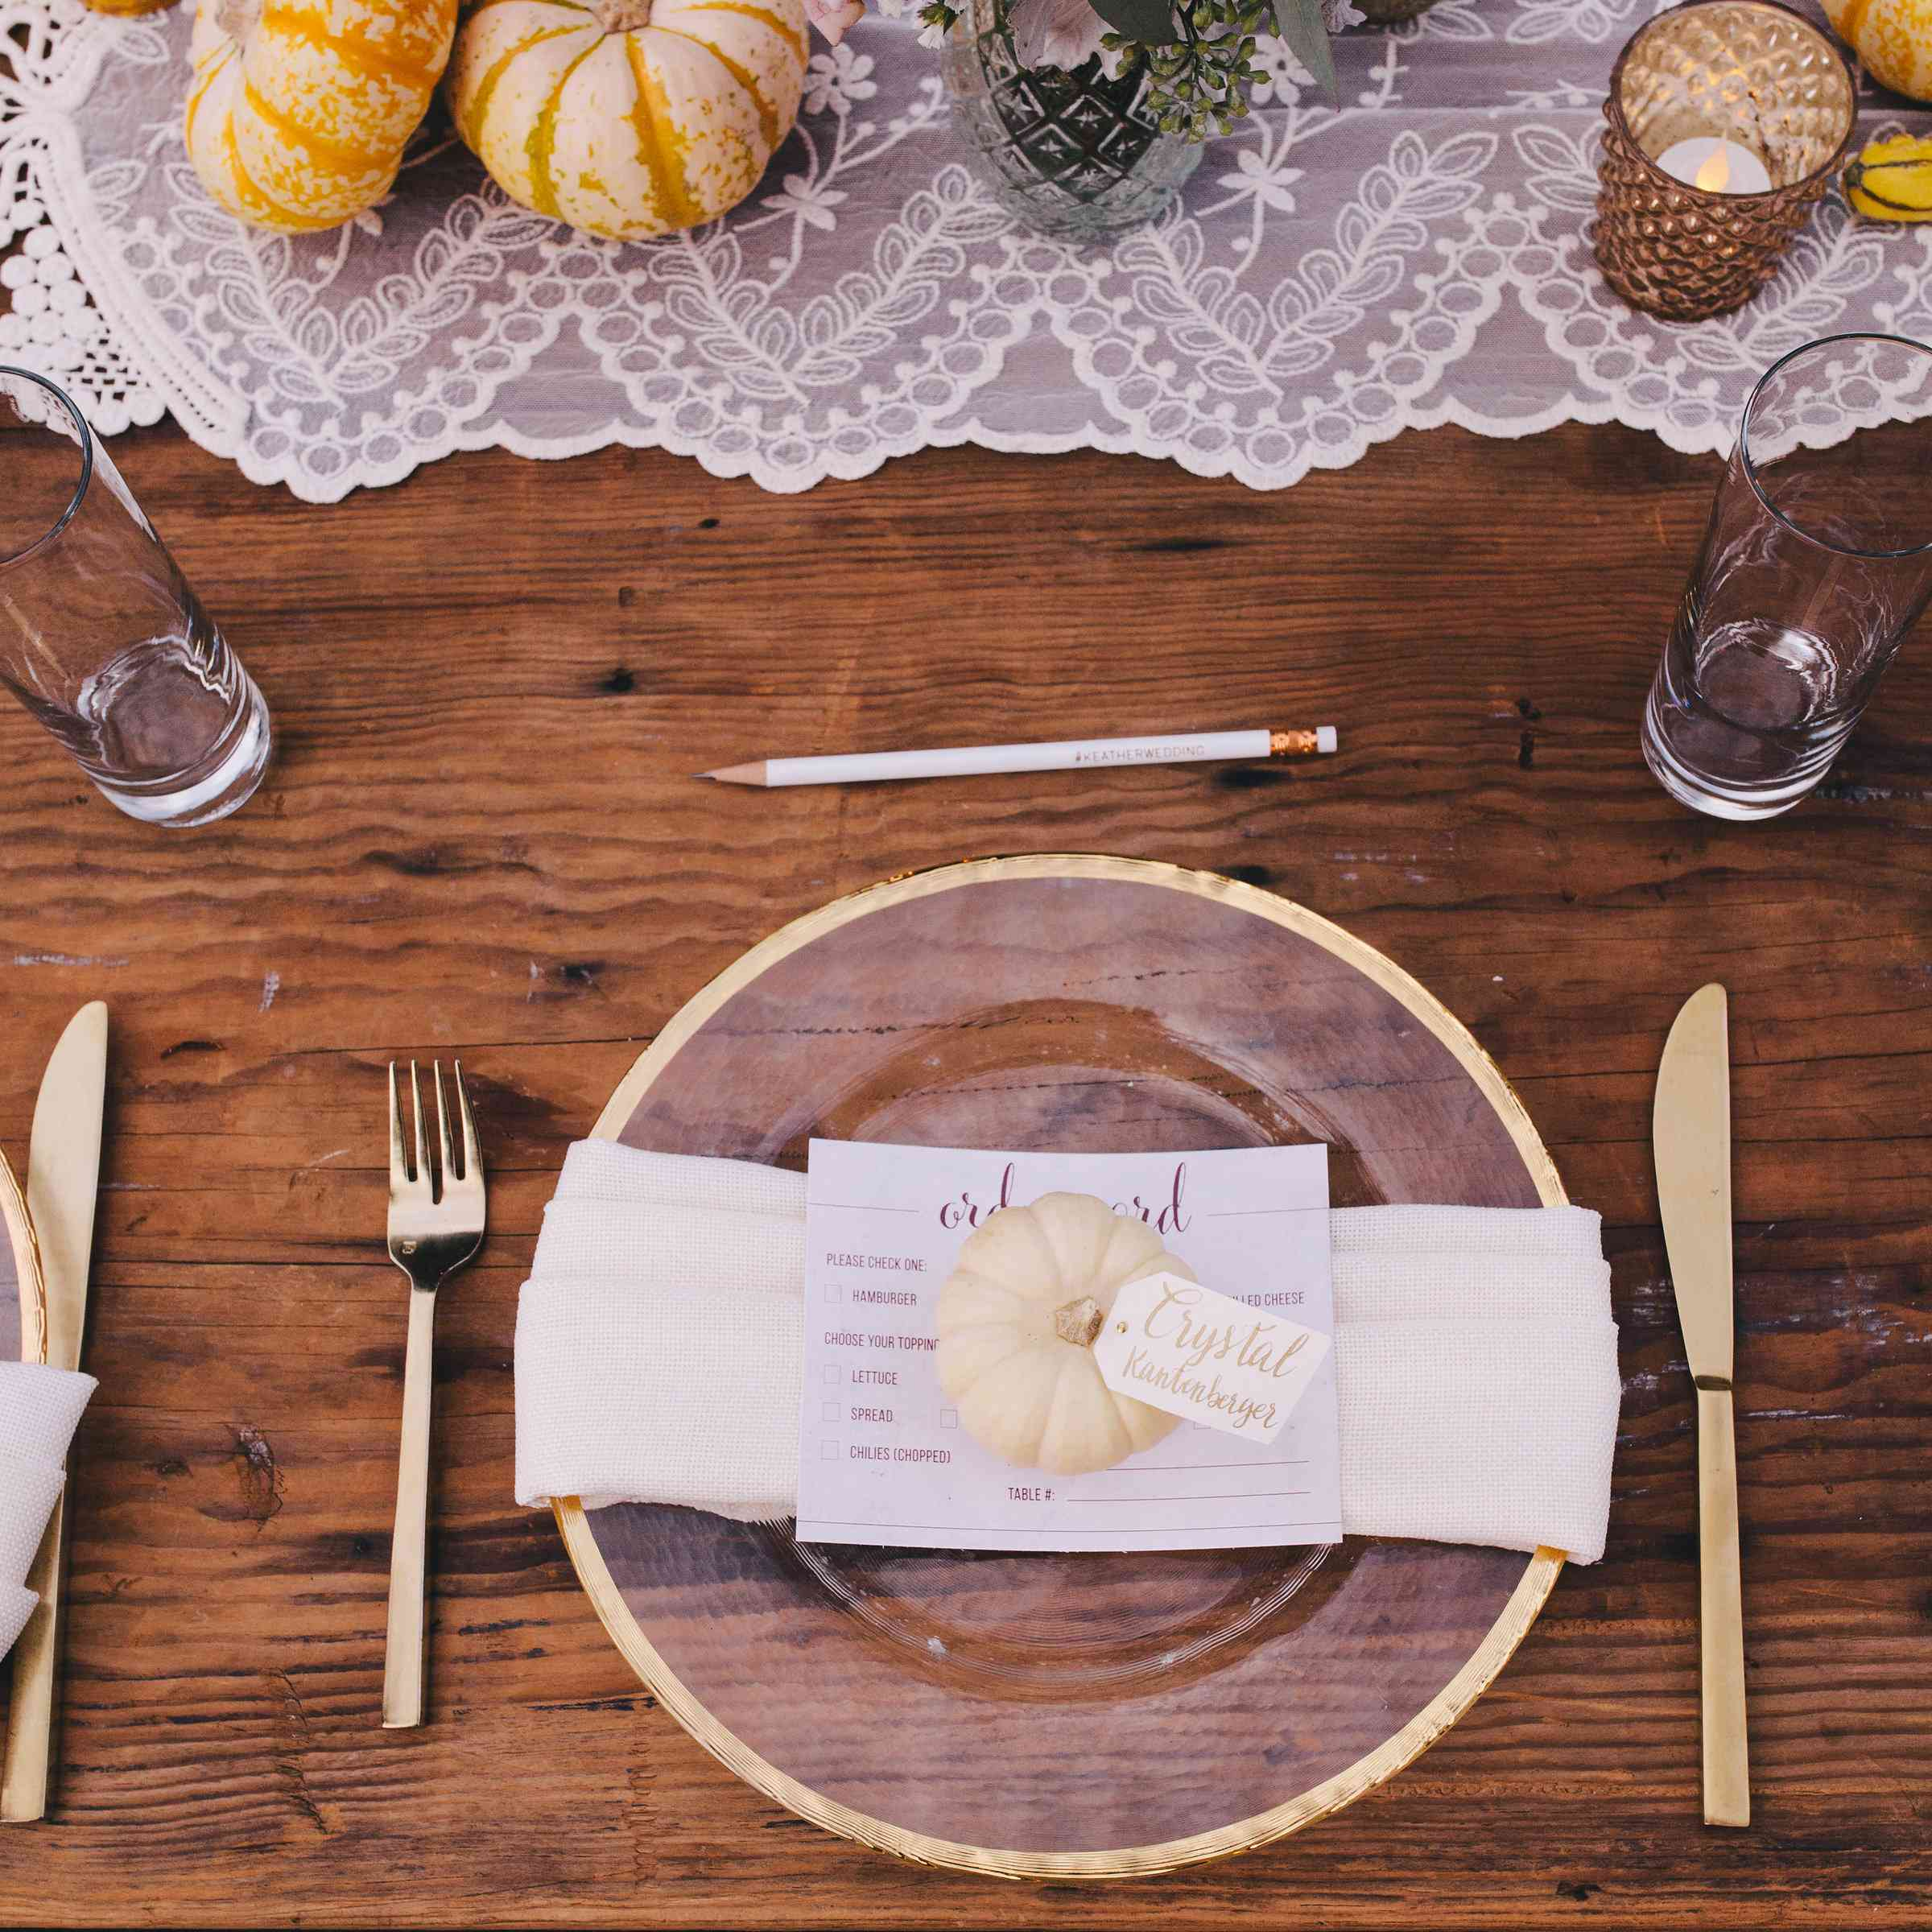 12 Ways To Decorate Your Fall Wedding With Pumpkins